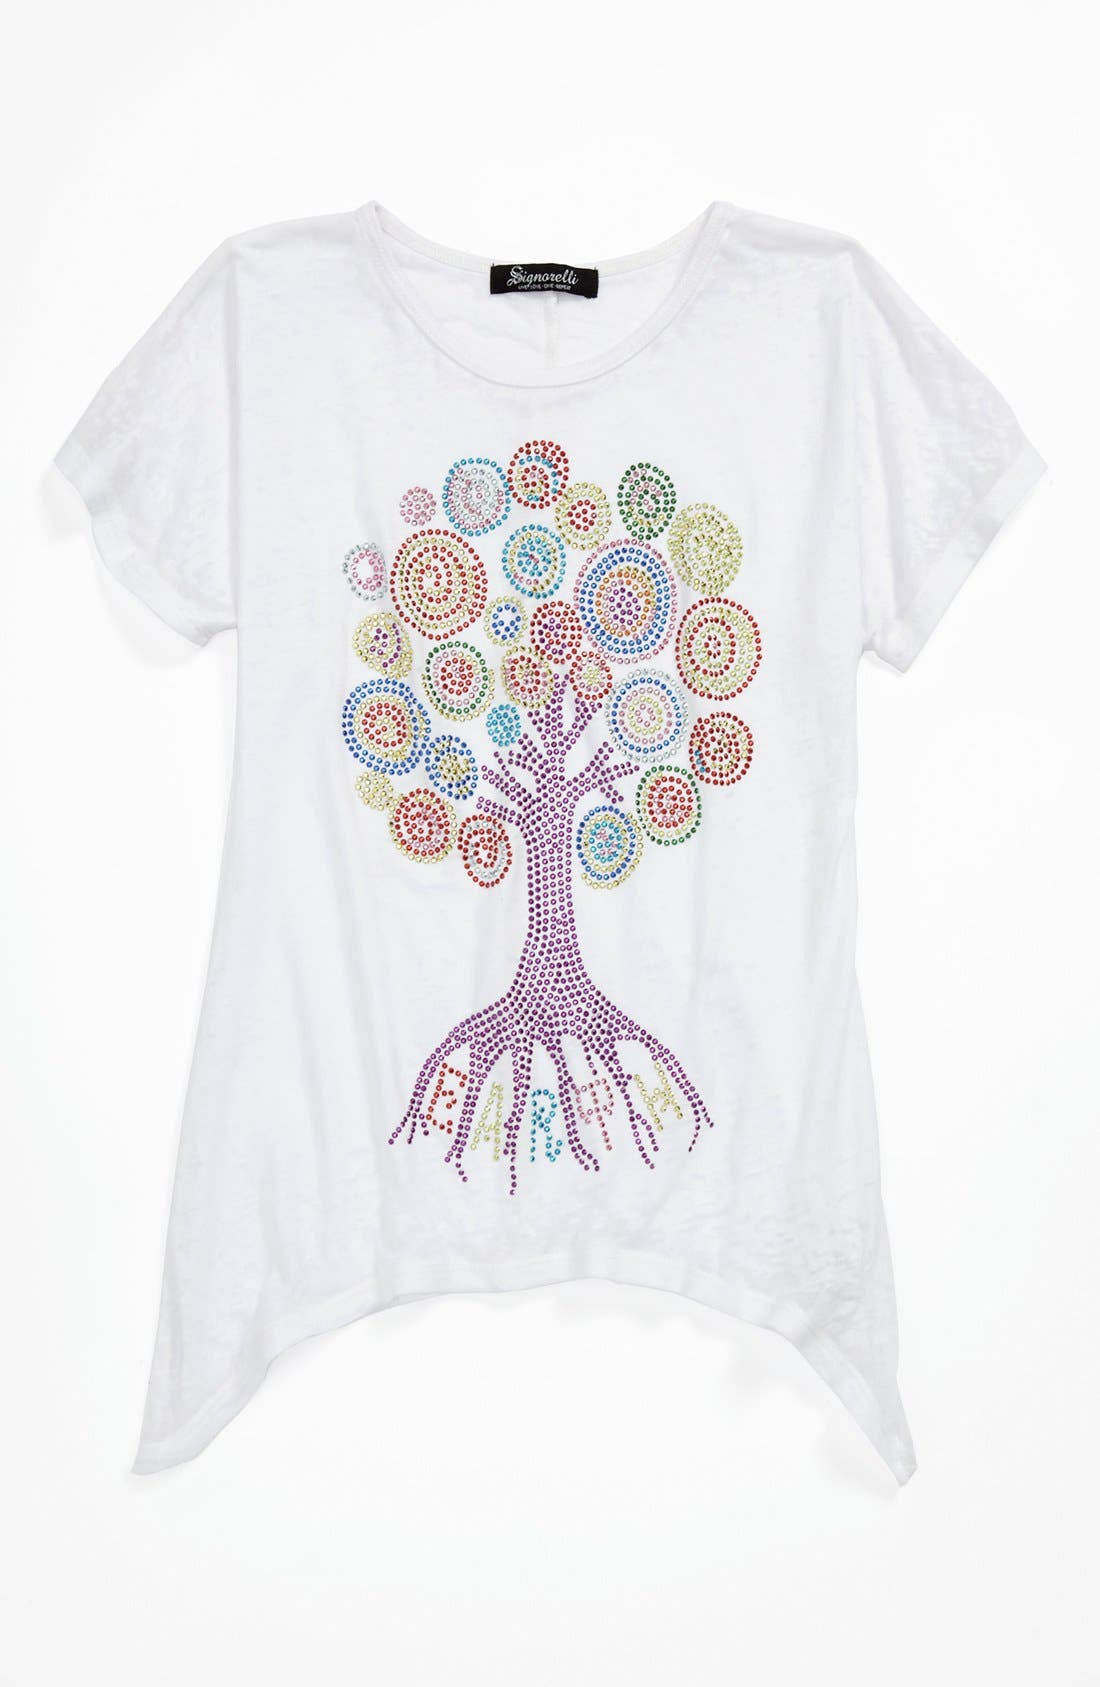 Alternate Image 1 Selected - Signorelli 'Earth' Tee (Big Girls)